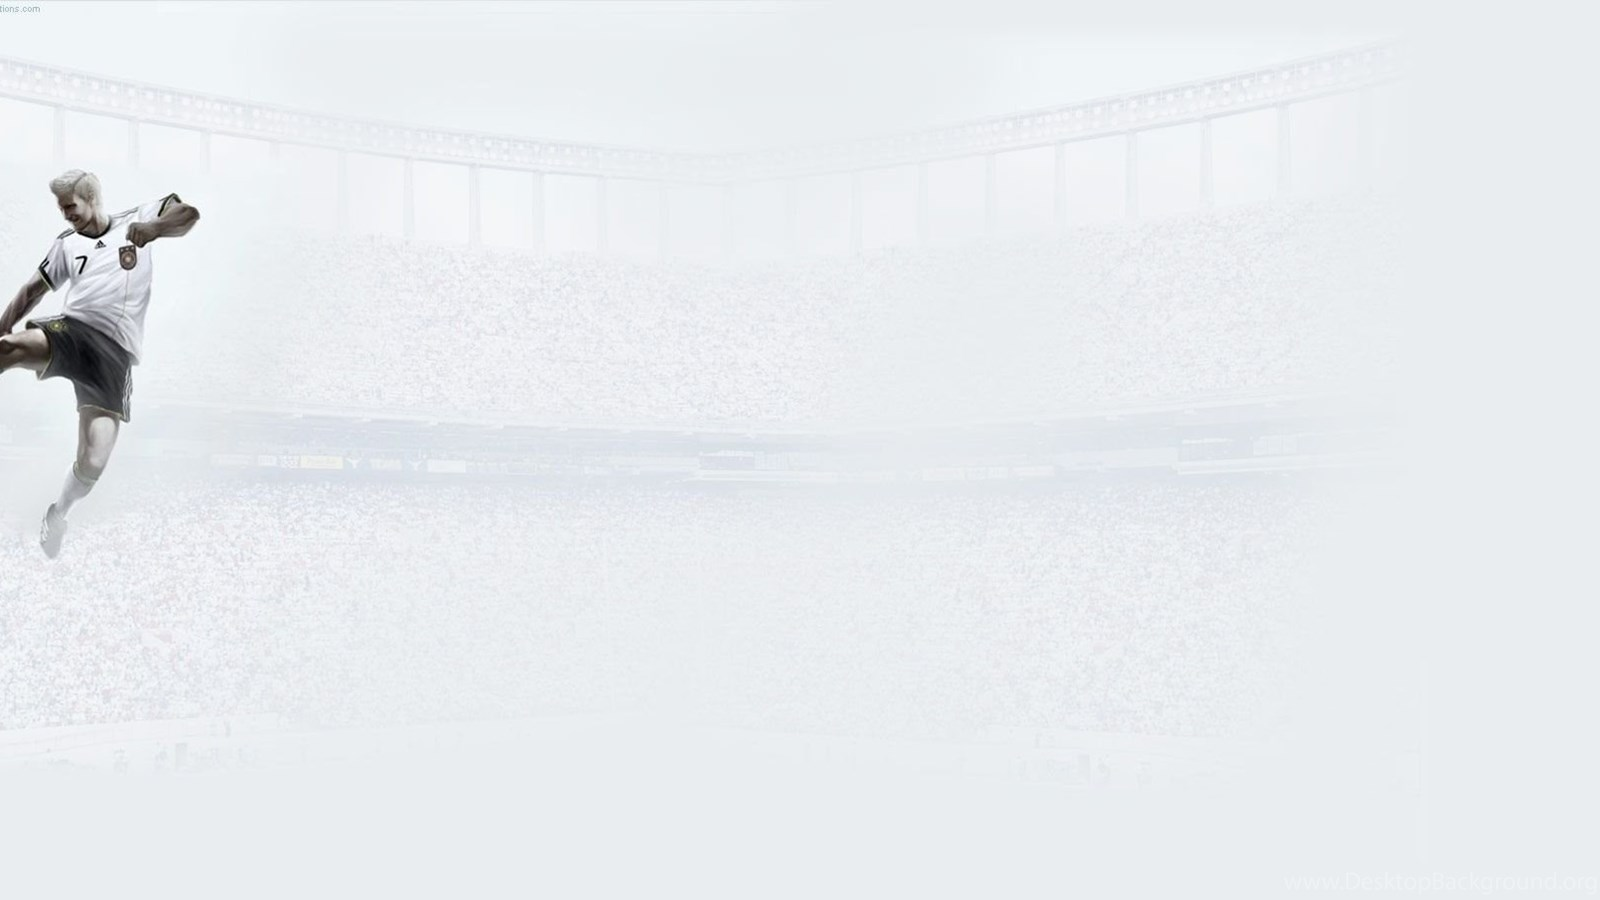 Free Soccer Sports Backgrounds For Powerpoint Sports Ppt